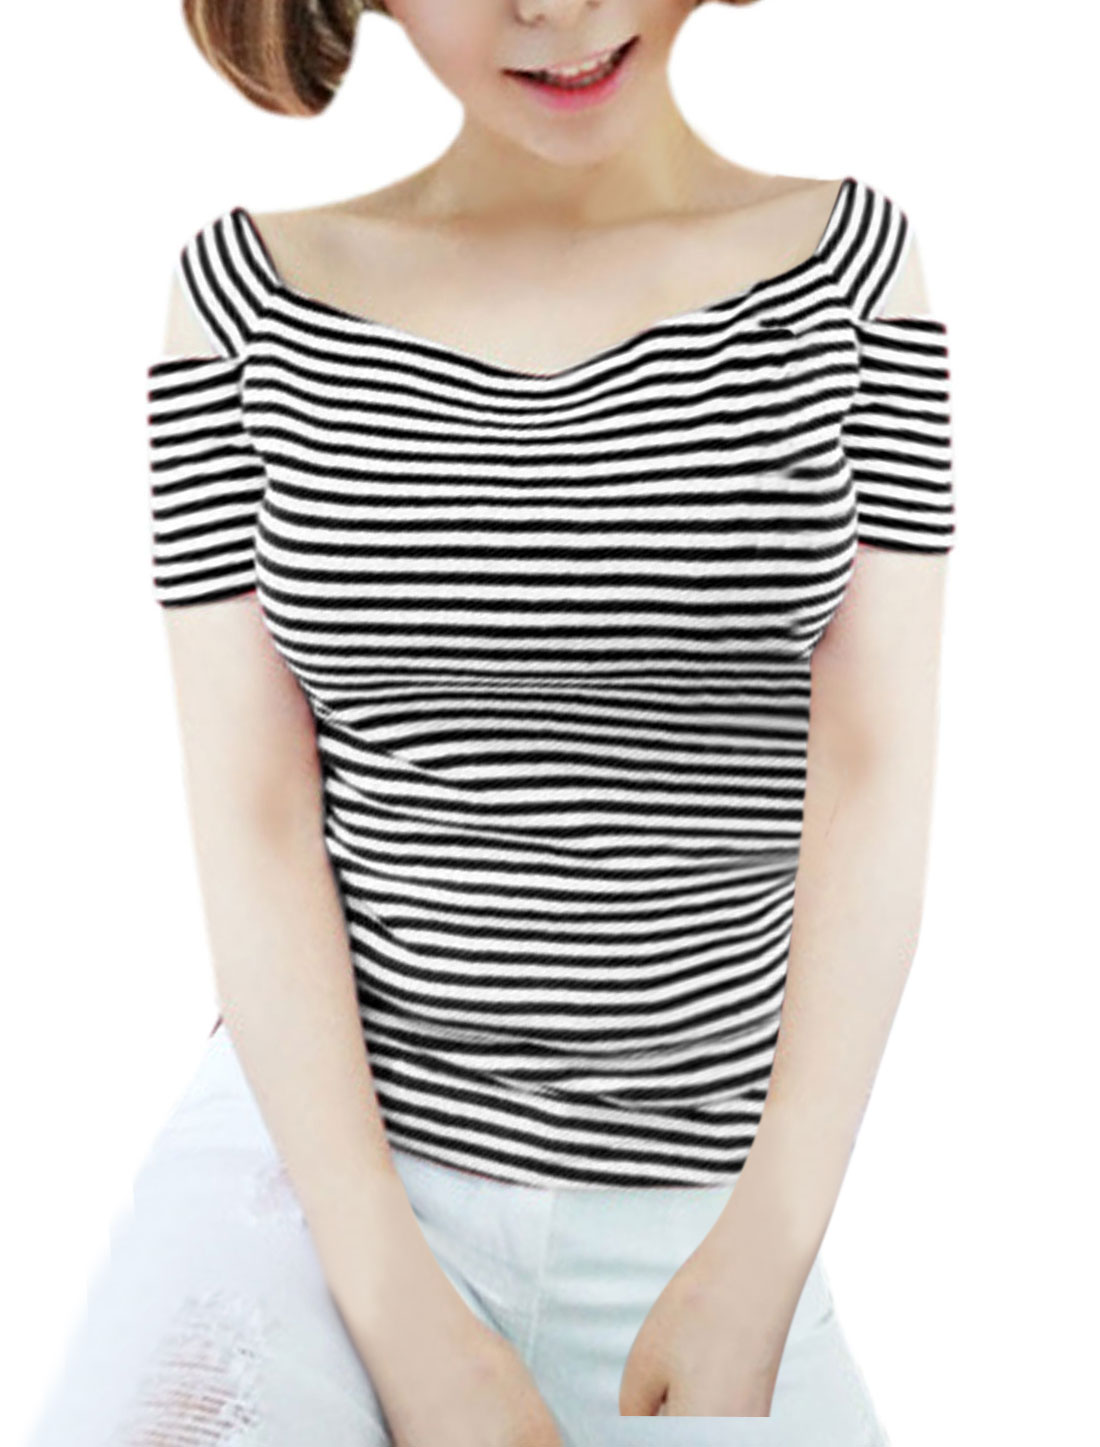 Lady Cut Out Short Sleeve Stripes Casual T-Shirt Black White M